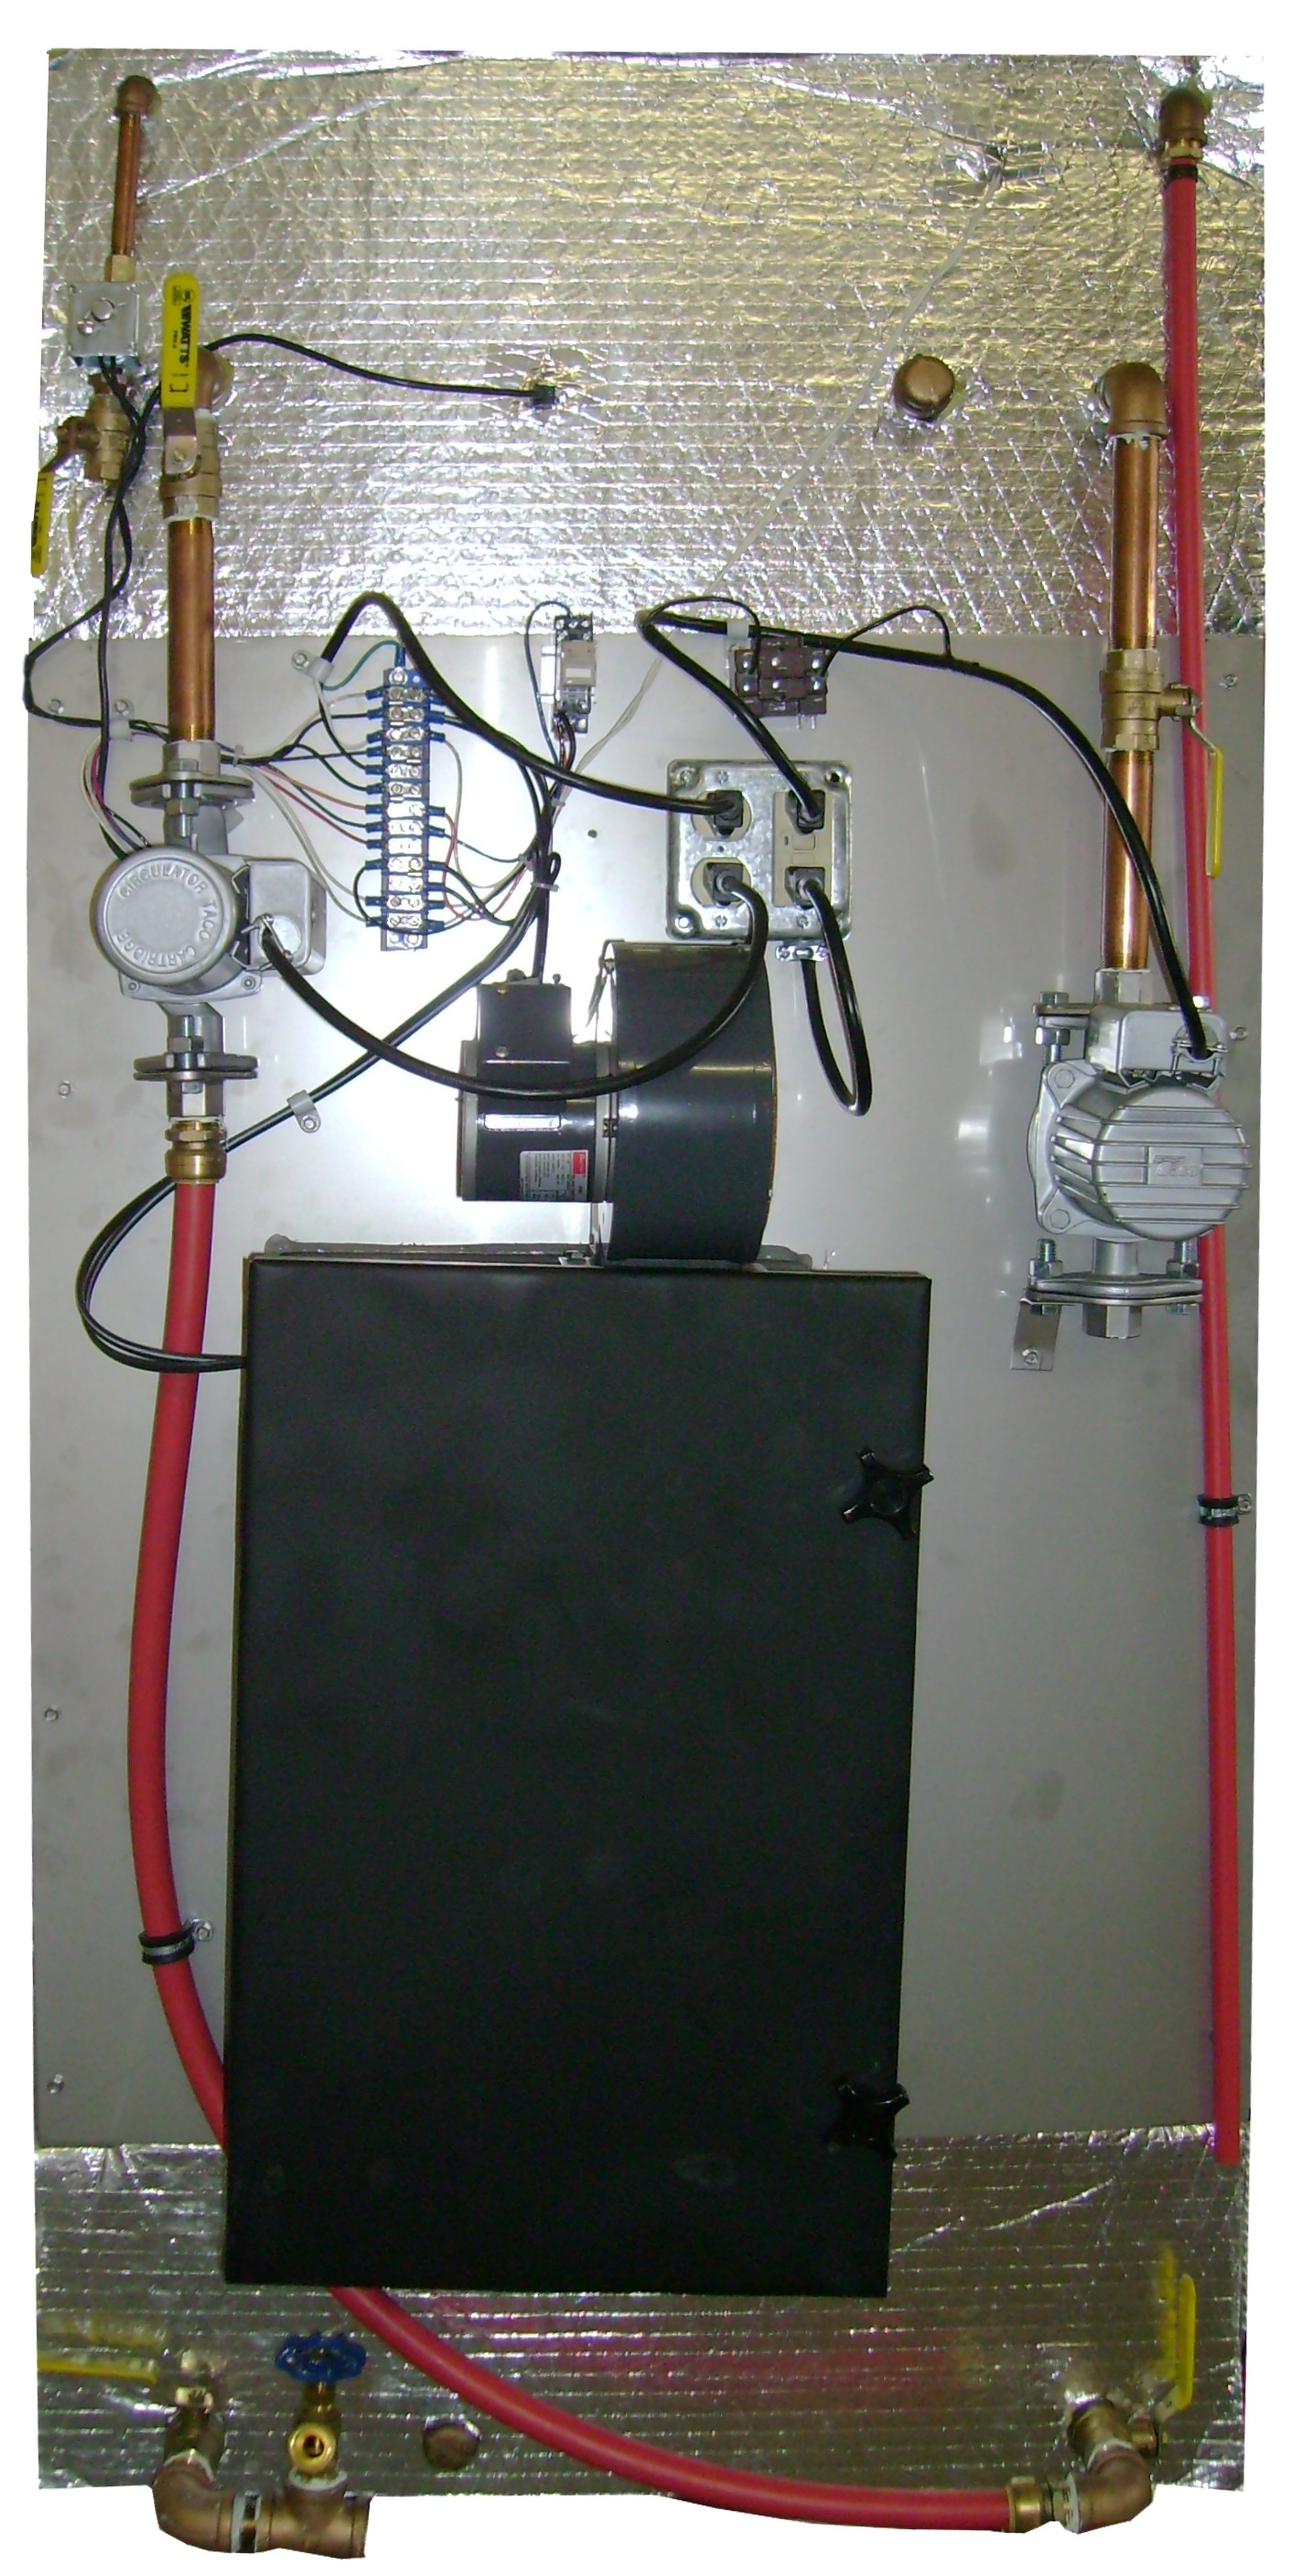 wiring diagram for wood stove blower fv 2218  hardy stove relay wiring schematics wiring diagram  hardy stove relay wiring schematics